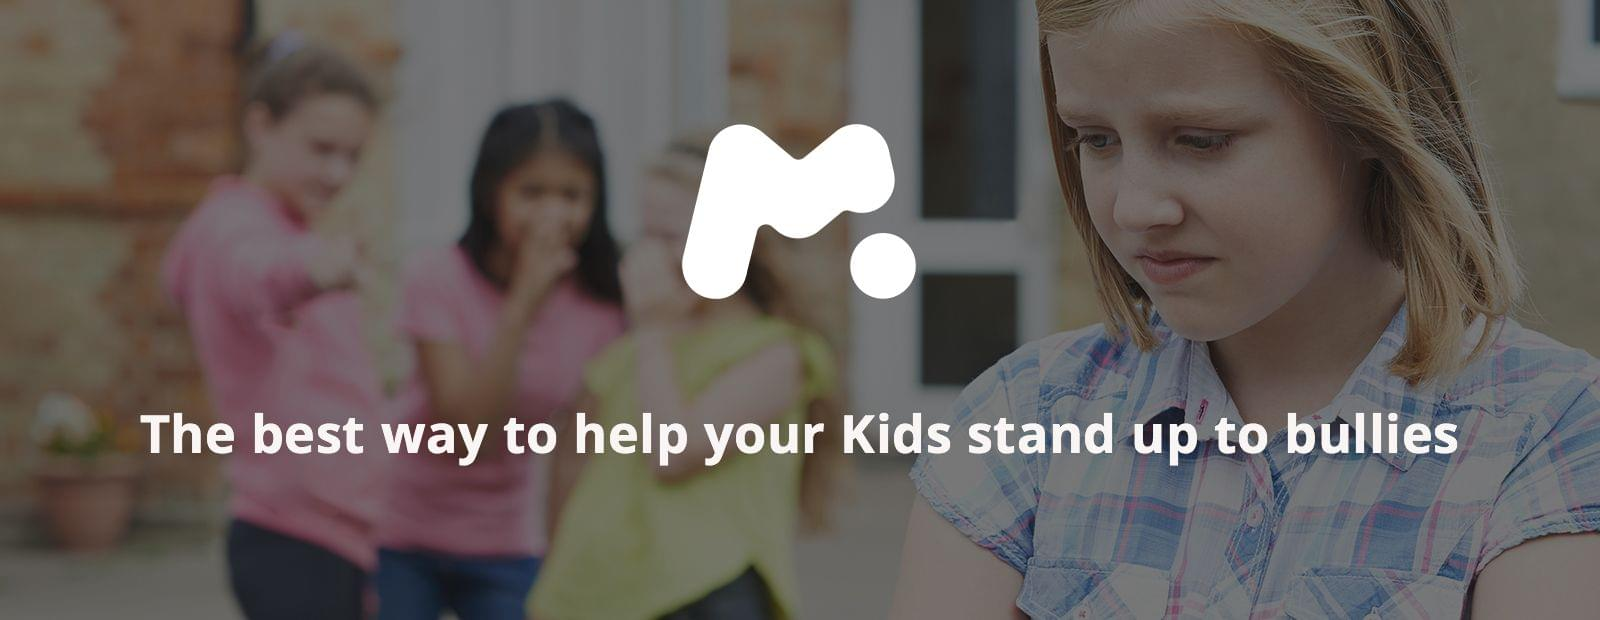 The best way to help your kids stand up to bullies